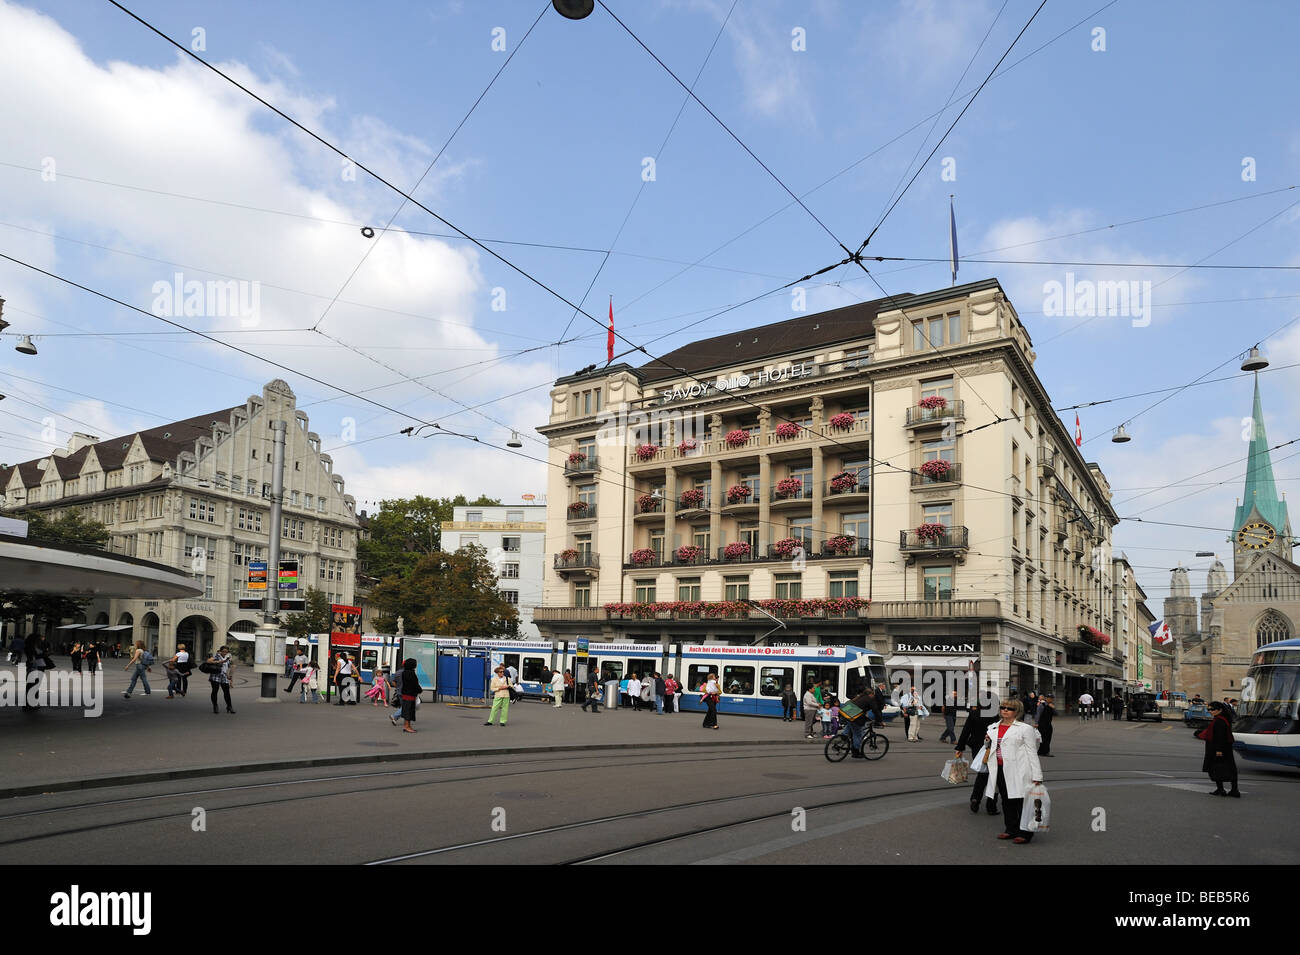 The Savoy hotel on Bahnhofstraße in Zurich, view from Parade Platz. - Stock Image